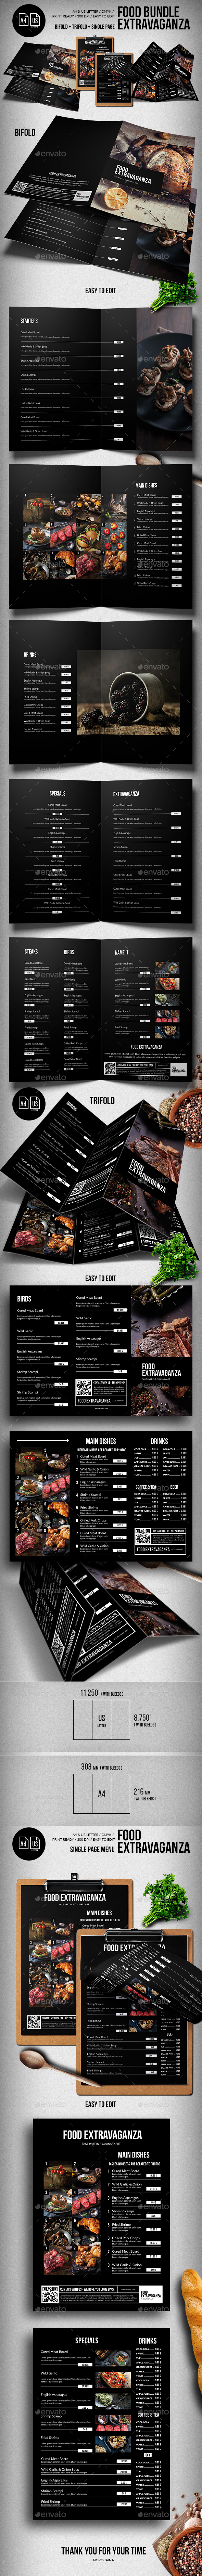 Multipurpose Extravaganza Food Menu Big Bundle - Food Menus Print Templates